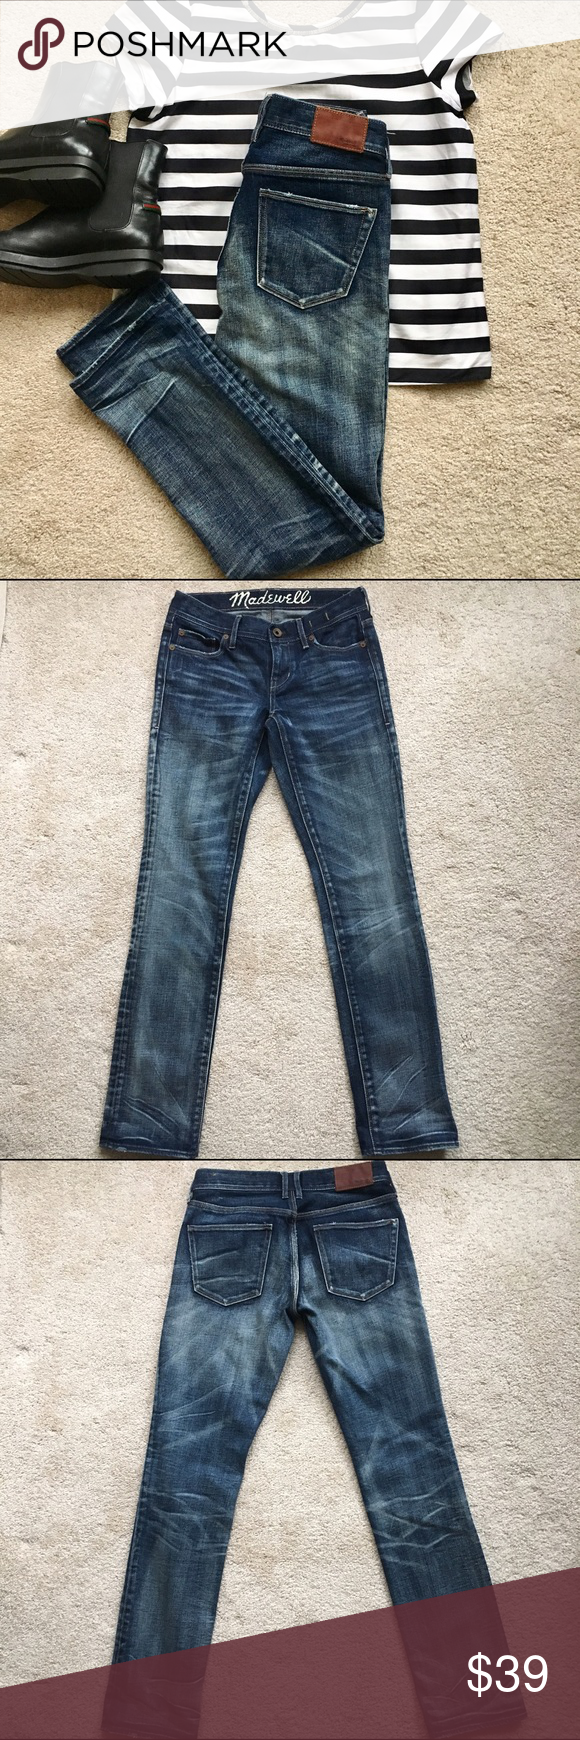 Like New Madewell Rail Straight Jeans Madewell Rail Straight Jeans in like new condition. Size 25 x 30. Dark distressed wash. These are high quality jeans, made to last! Zara top is also available in my closet! Madewell Jeans Straight Leg